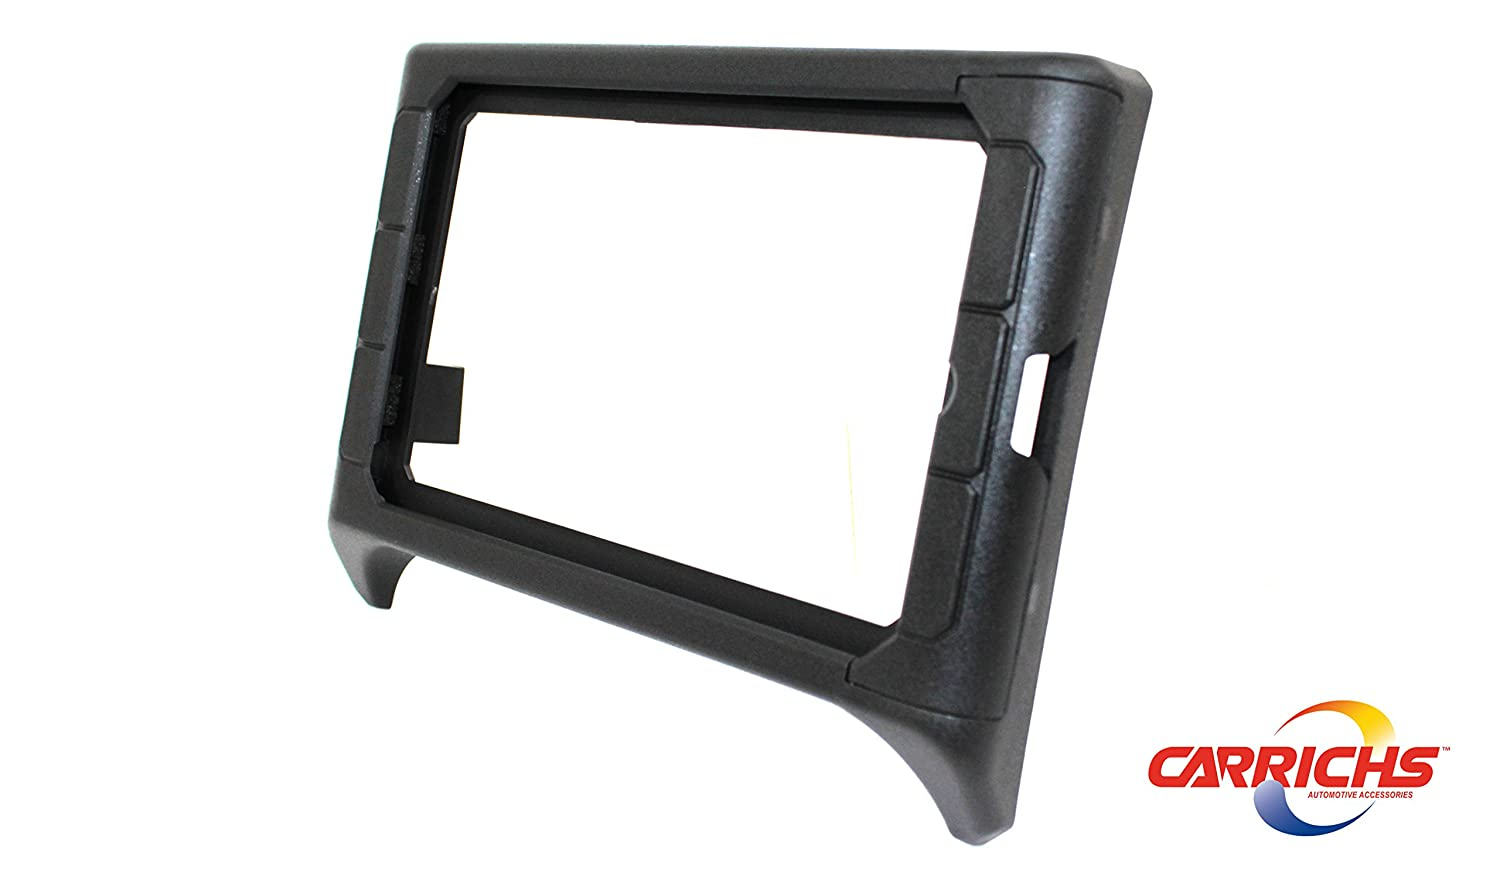 8 Screen Carrichs TDK638 Tablet Dash Mount 15-18 Ford F-150 /& 17-18 Ford F-250 F-350 Super Duty